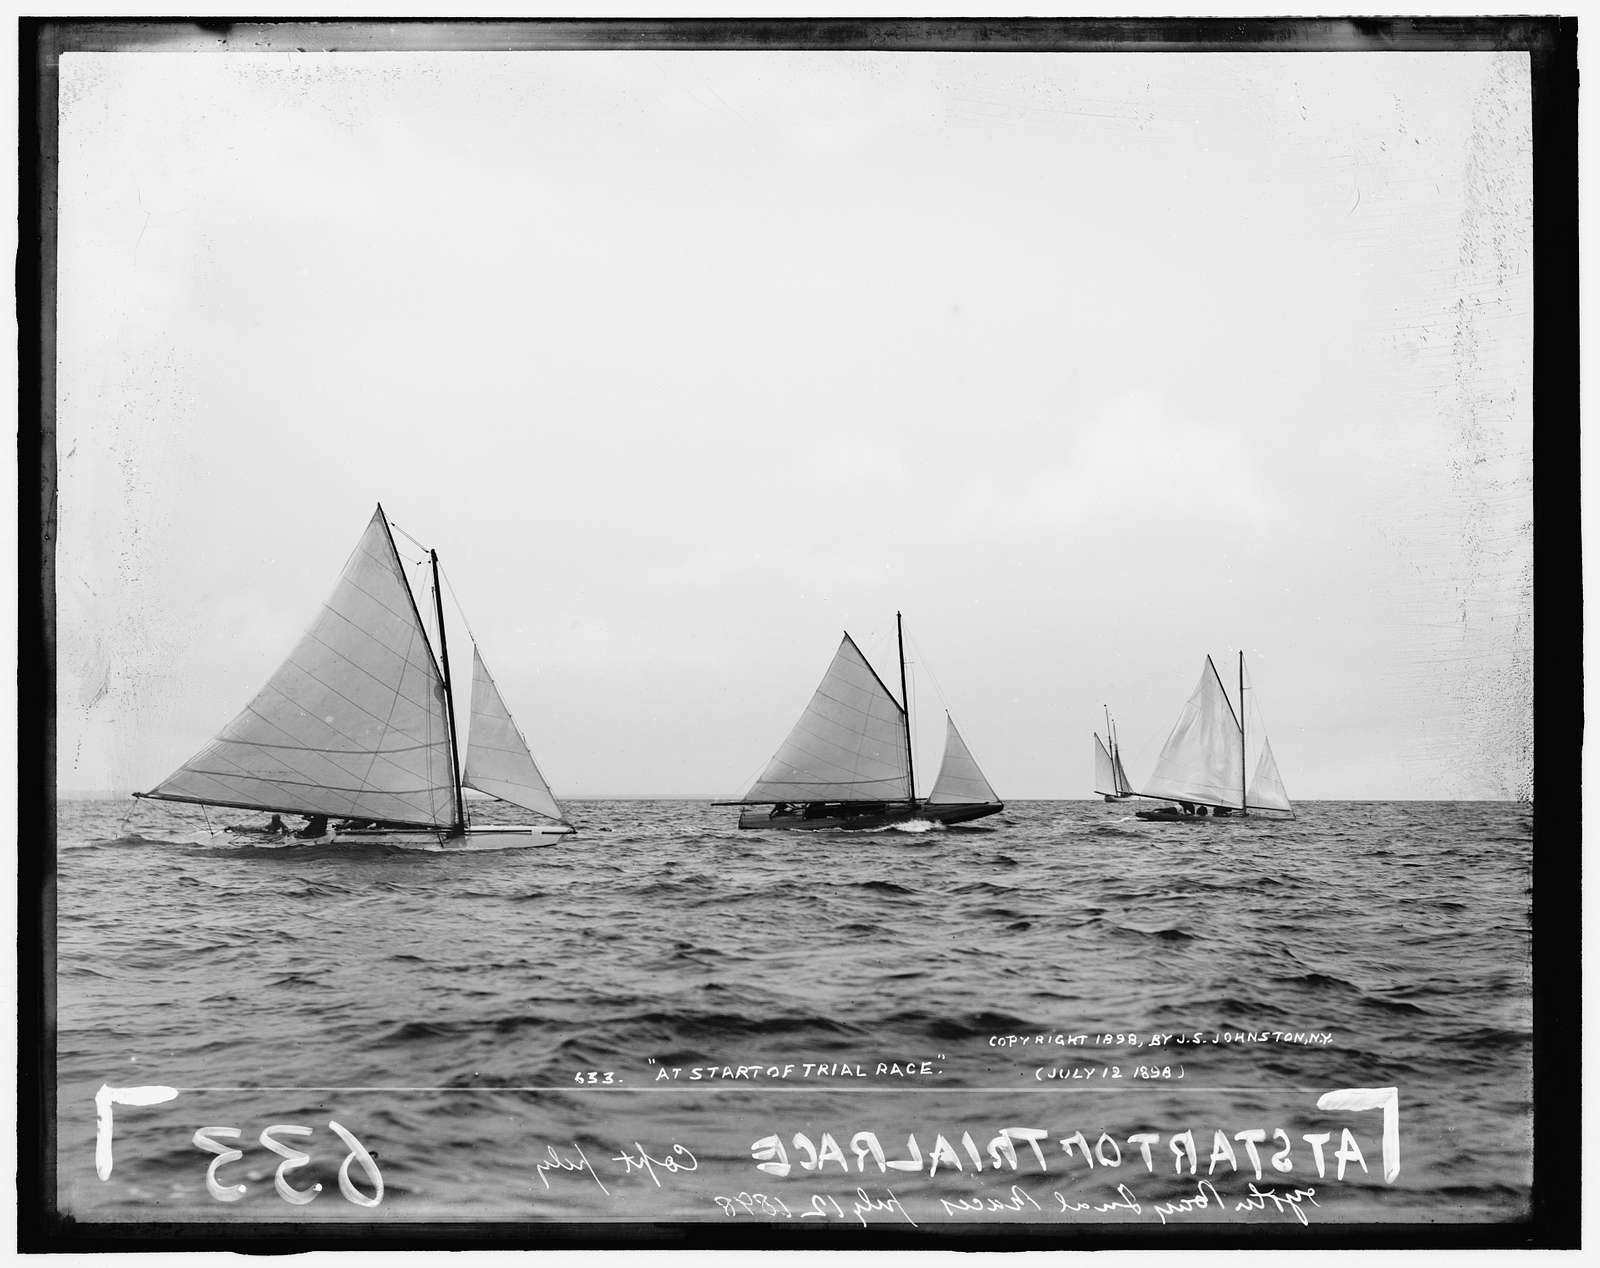 At start of trial race